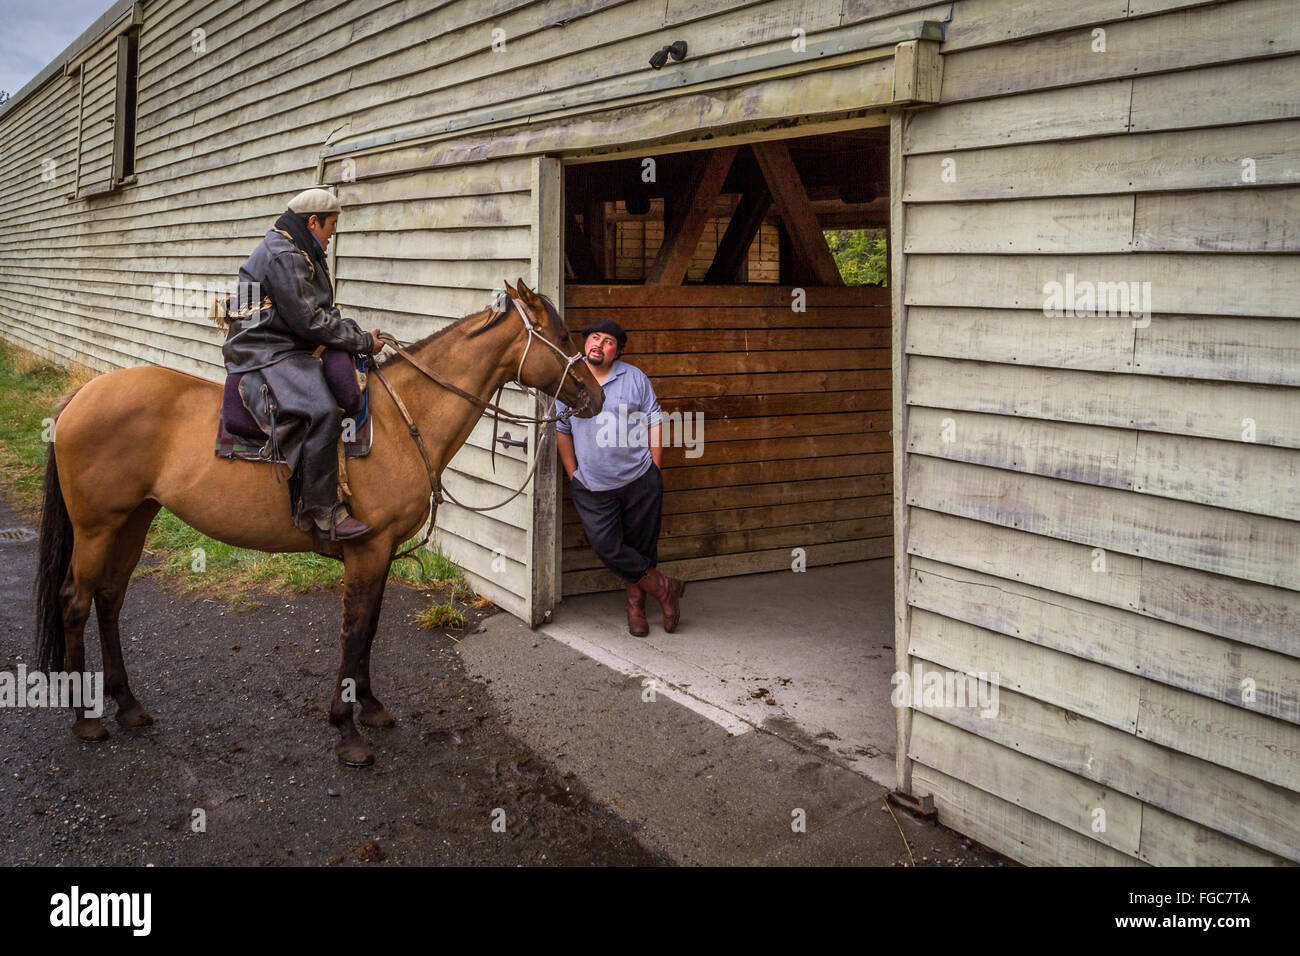 Two gauchos at a stable, one on a horse, Torres del Paine National Park, Patagonia, Chile, South America - Stock Image